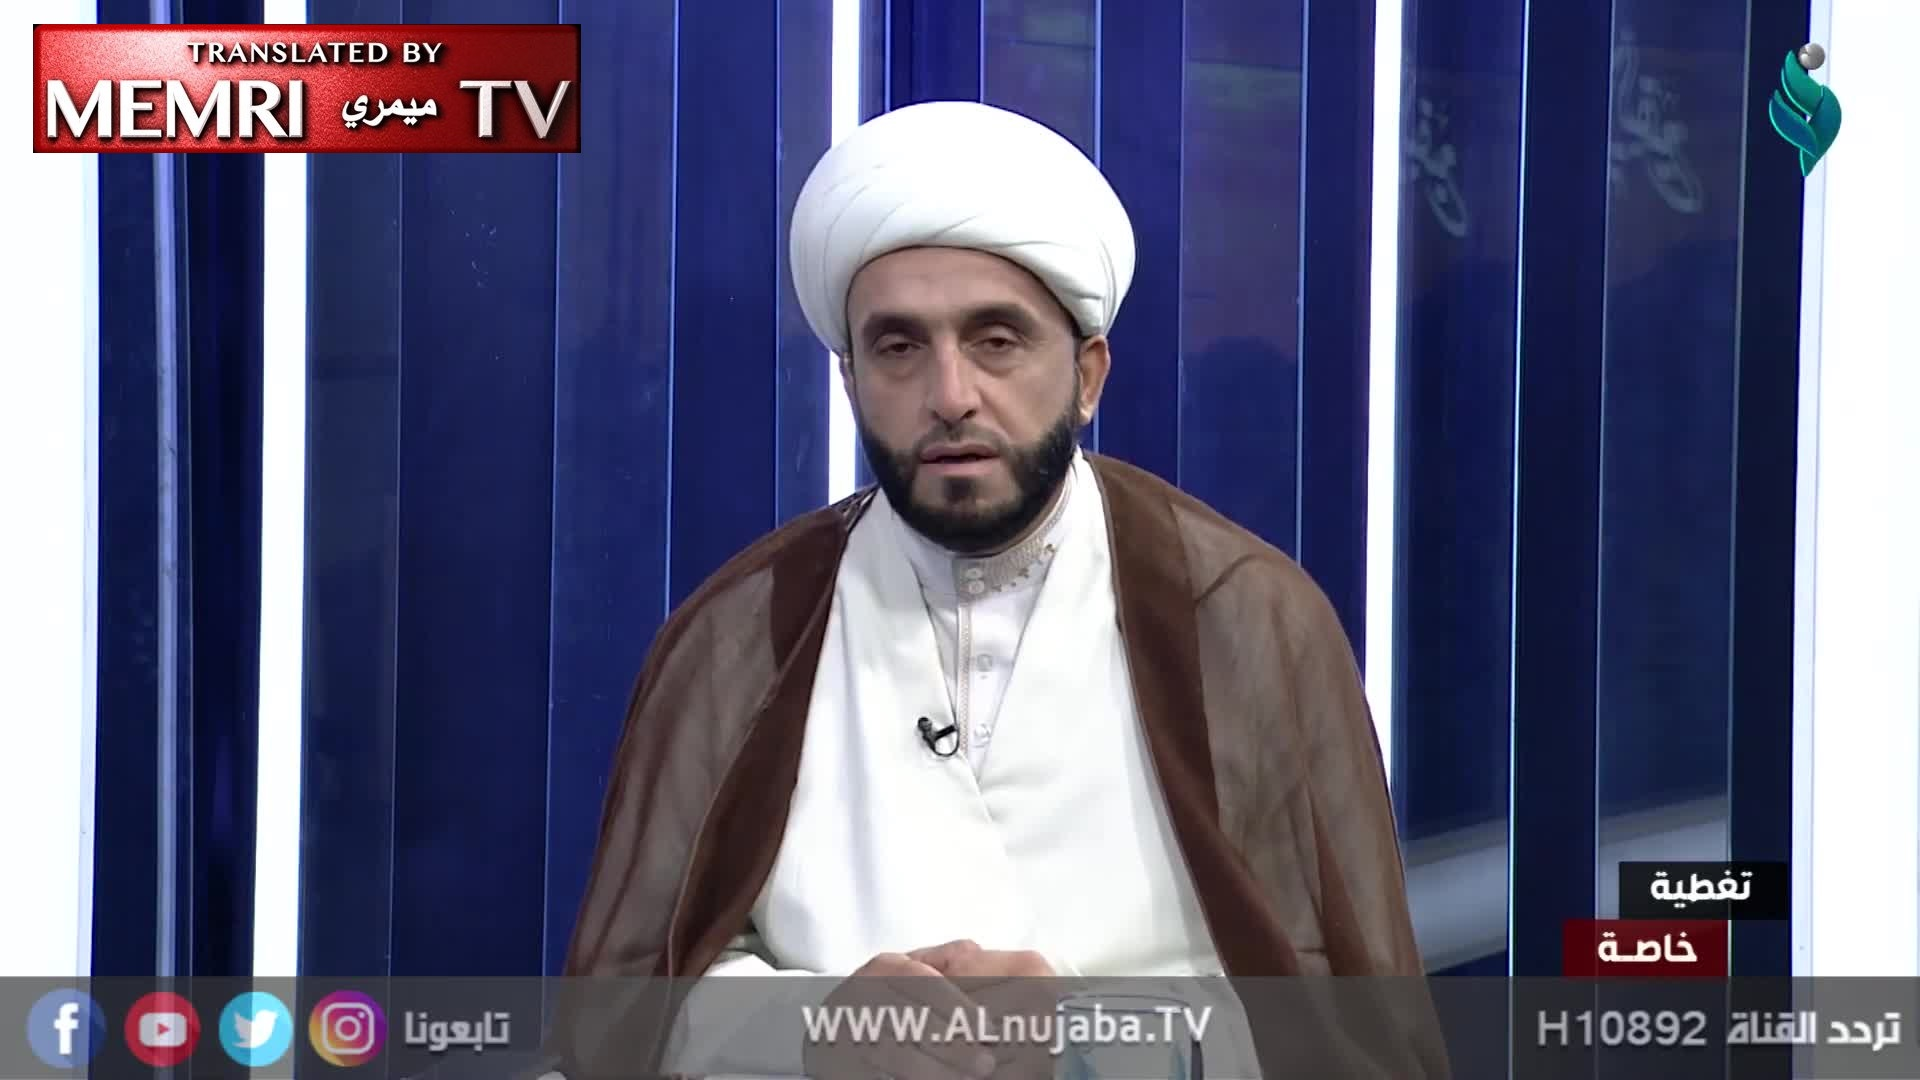 "Iraqi TV Host Sheikh Ali Al-Daraji: Wahhabis are Zionist ""Islamic Jews"" Planted in Hejaz by Freemasons to Fragment Muslims"